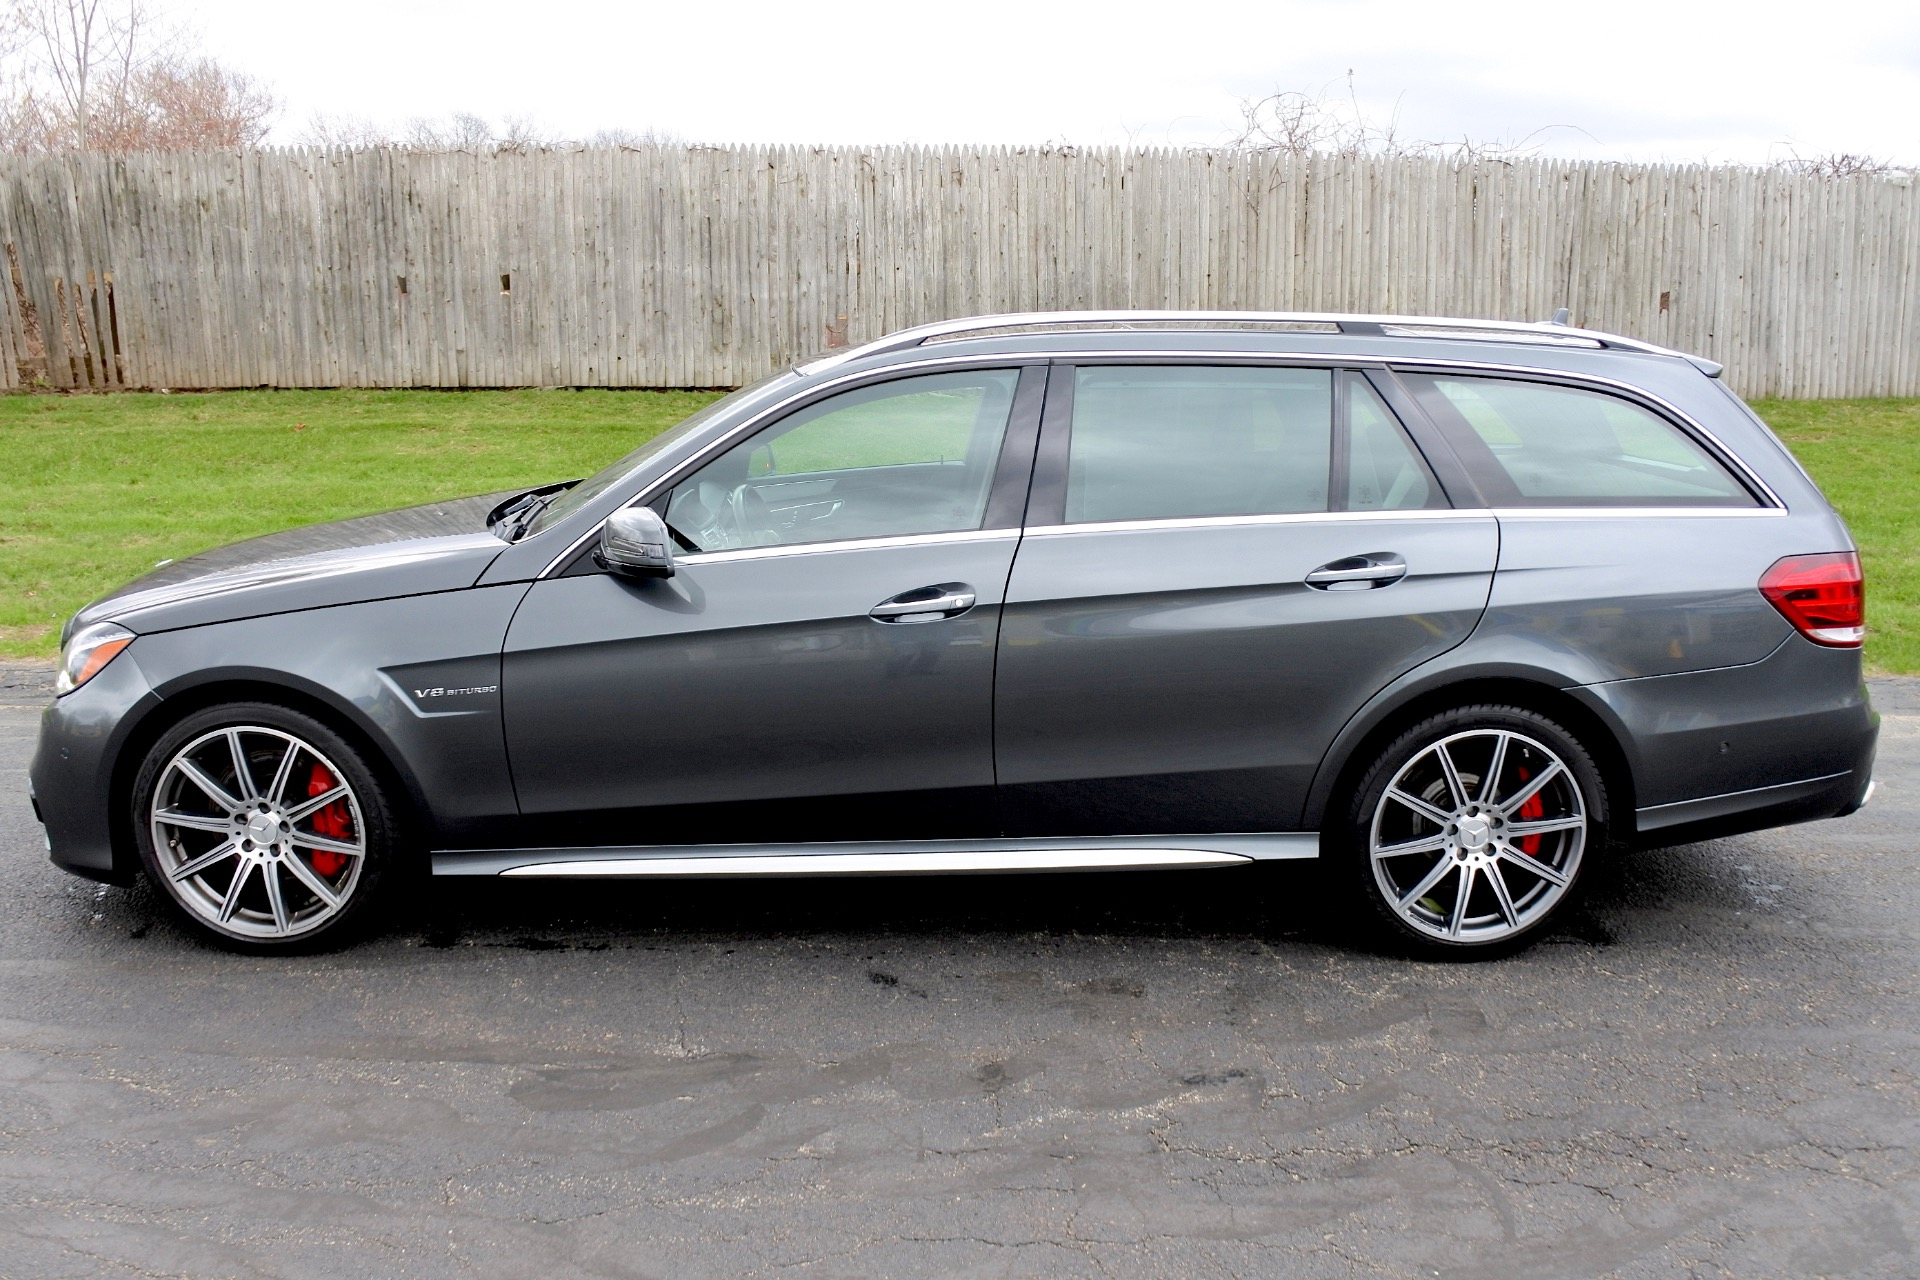 Used 2014 Mercedes-Benz E-class E63 S AMG Wagon 4MATIC Used 2014 Mercedes-Benz E-class E63 S AMG Wagon 4MATIC for sale  at Metro West Motorcars LLC in Shrewsbury MA 2